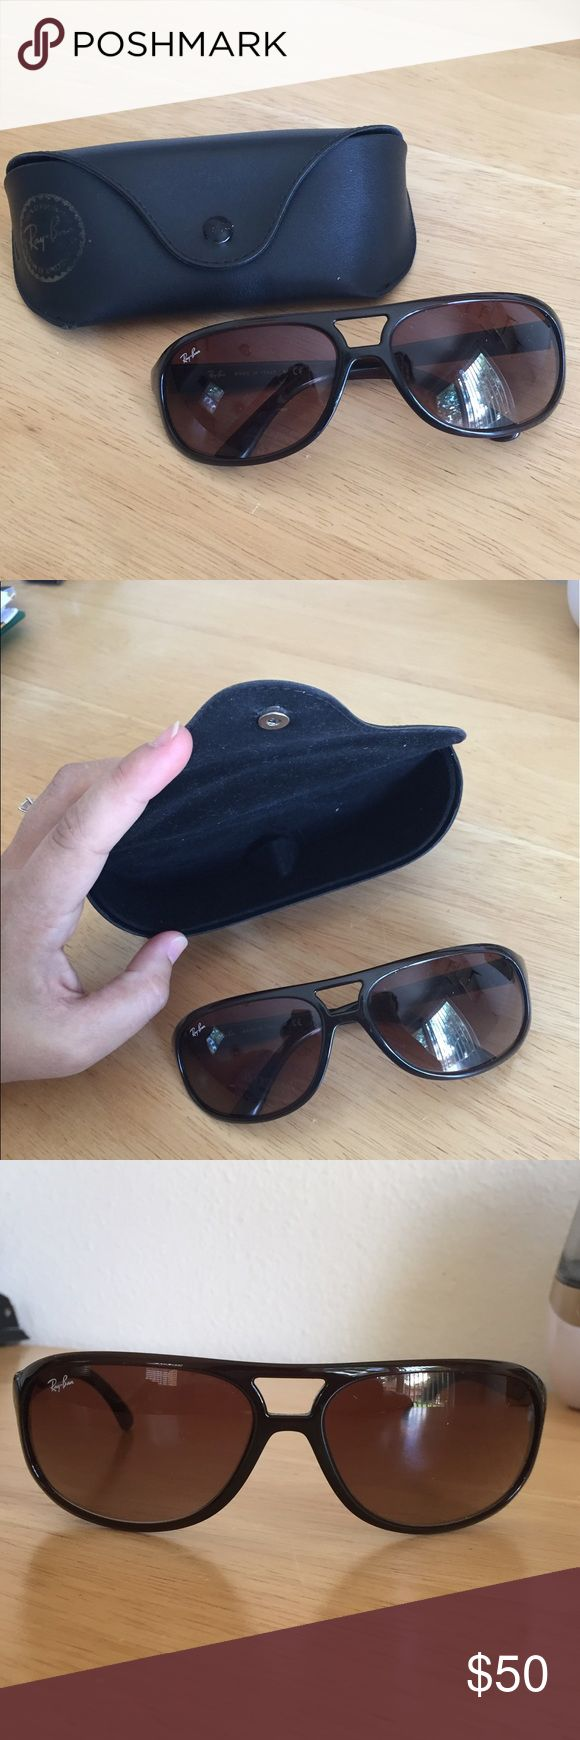 AUTHENTIC Ray Ban Tortoise Sunglasses Ray Ban Ladies Tortoise shell sunglasses. Perfect condition. Authentic. Comes with case, also in excellent condition. Ray-Ban Accessories Sunglasses